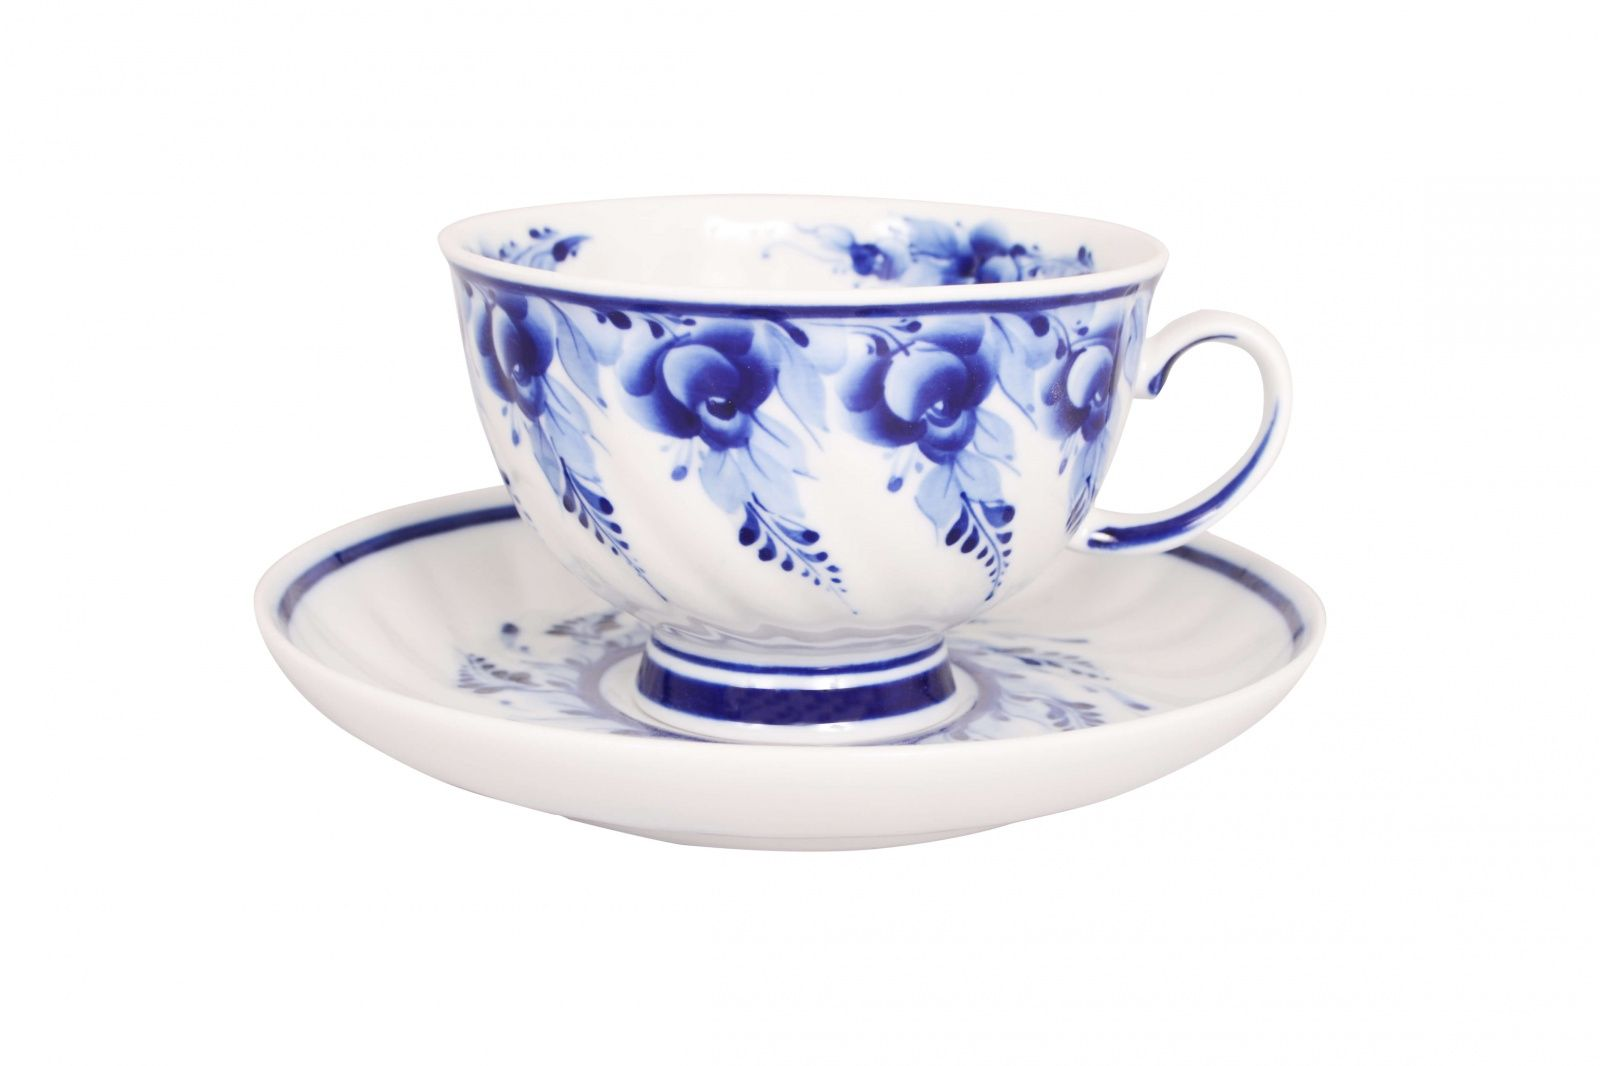 Dulevo porcelain / Tea cup and saucer set, 12 pcs., 350 ml Blue rose